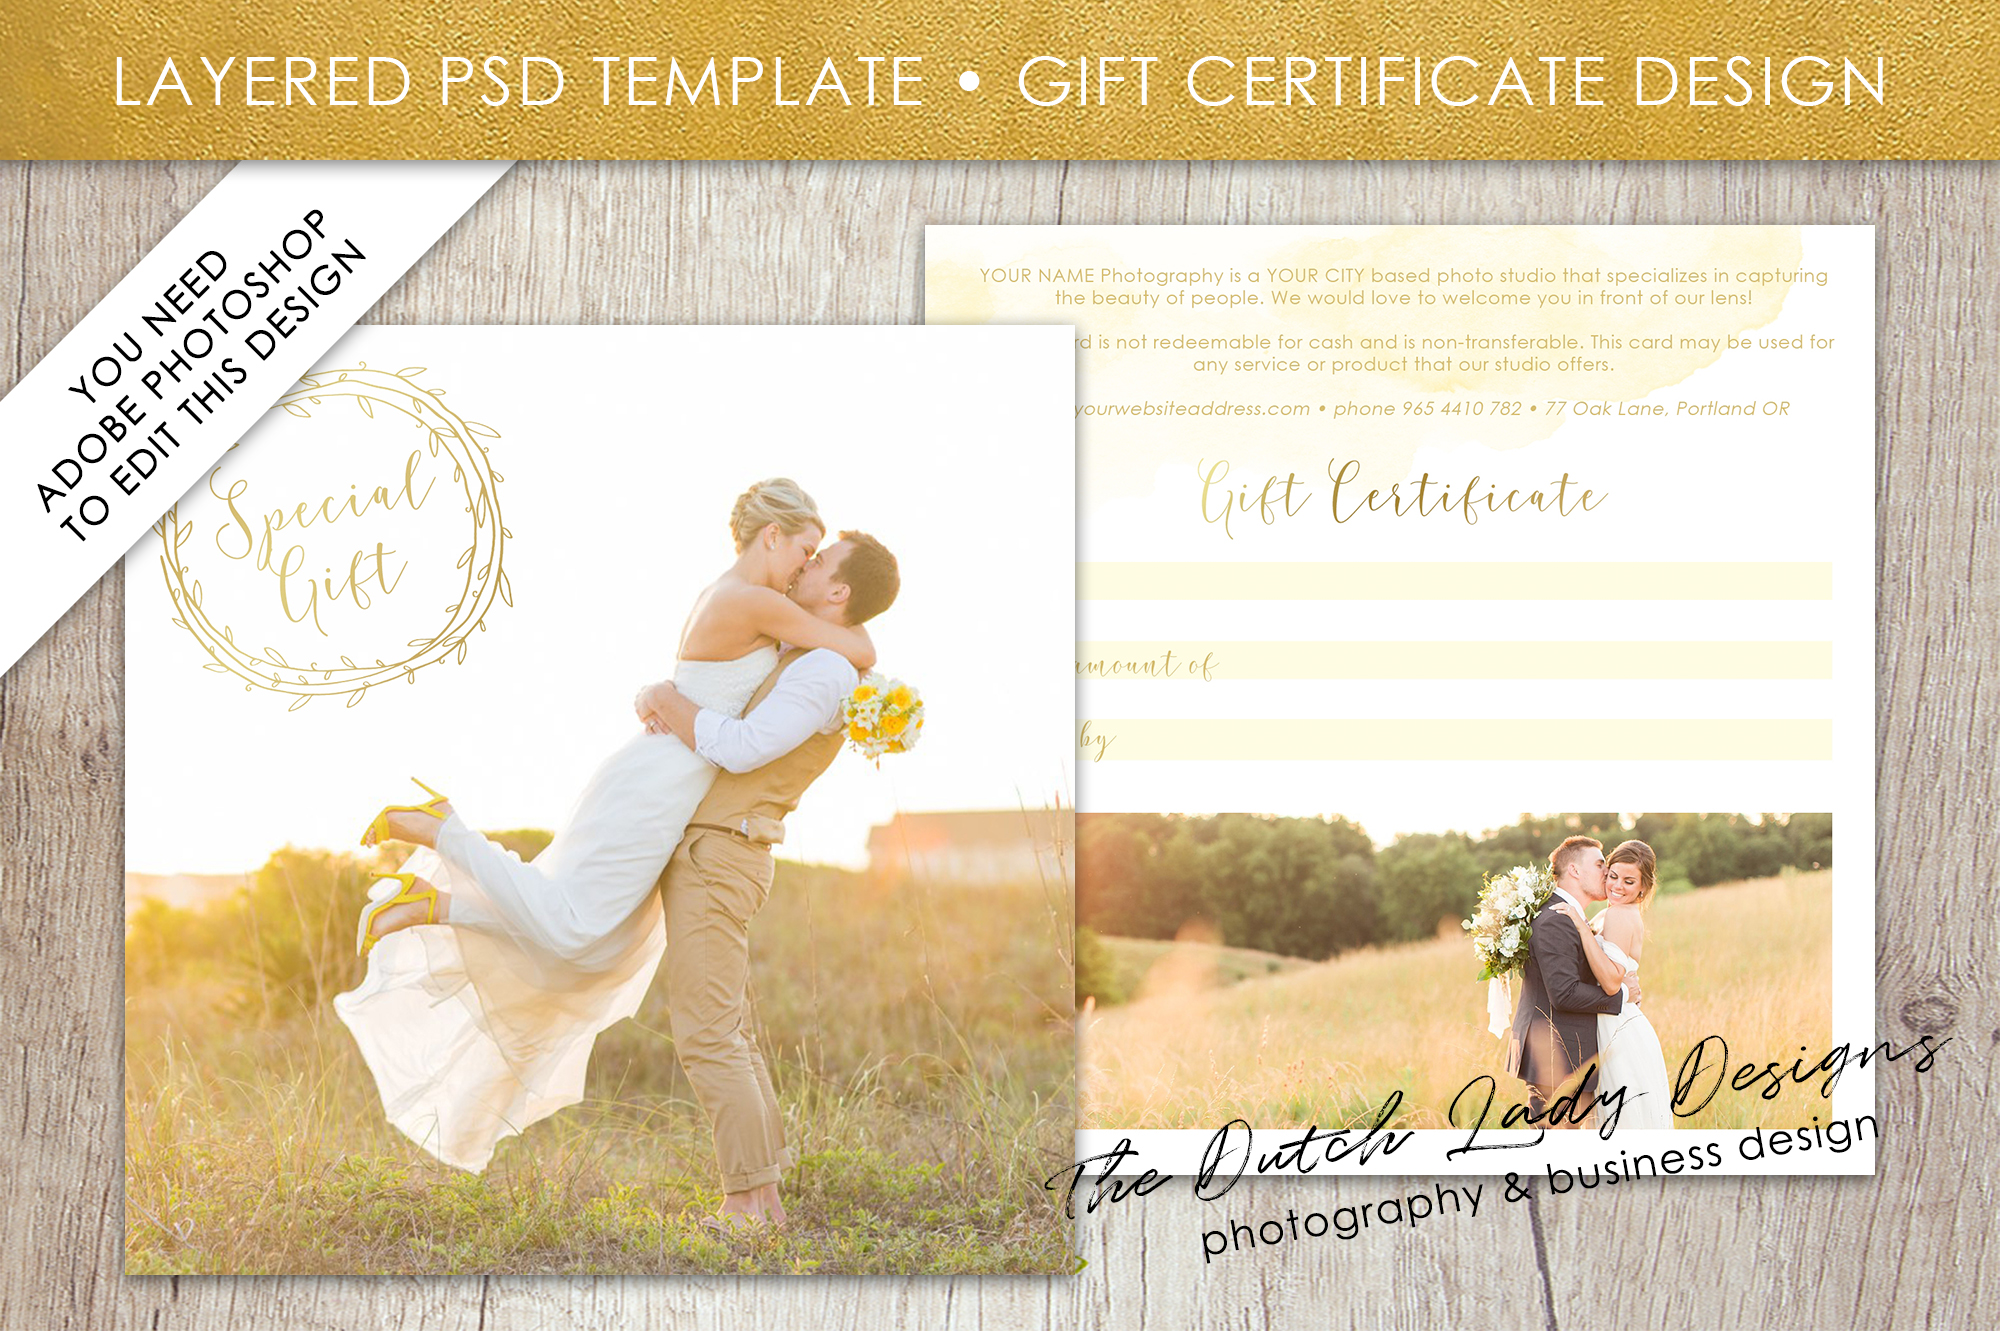 psd photo gift card template 48 example image 1